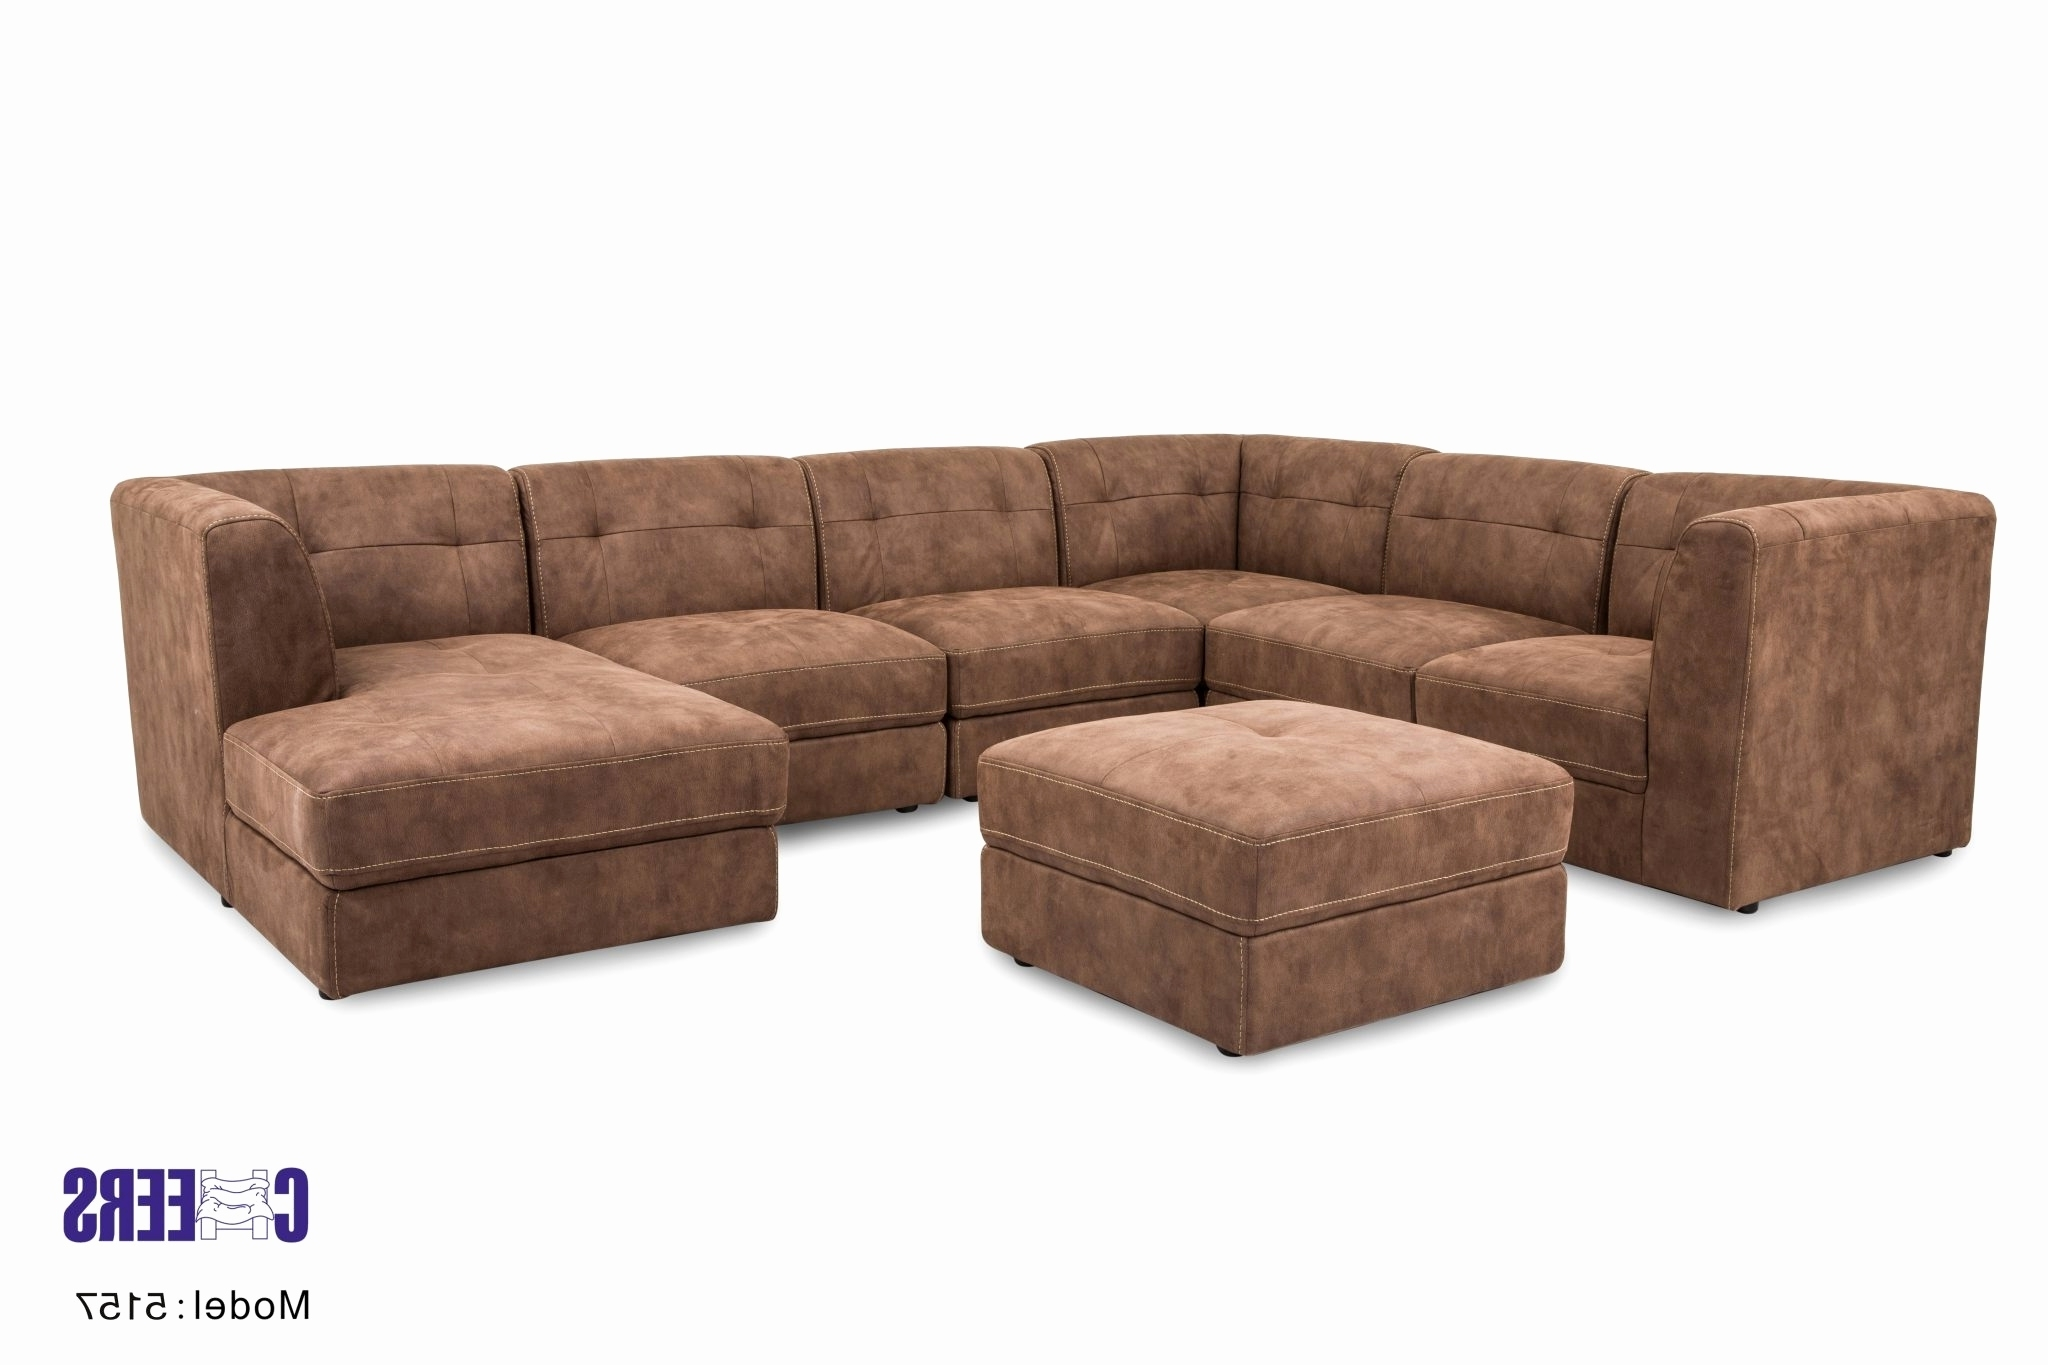 Luxury 6 Piece Sectional Sofa 2018 – Couches Ideas Throughout Most Recent Sam Levitz Sectional Sofas (View 5 of 15)